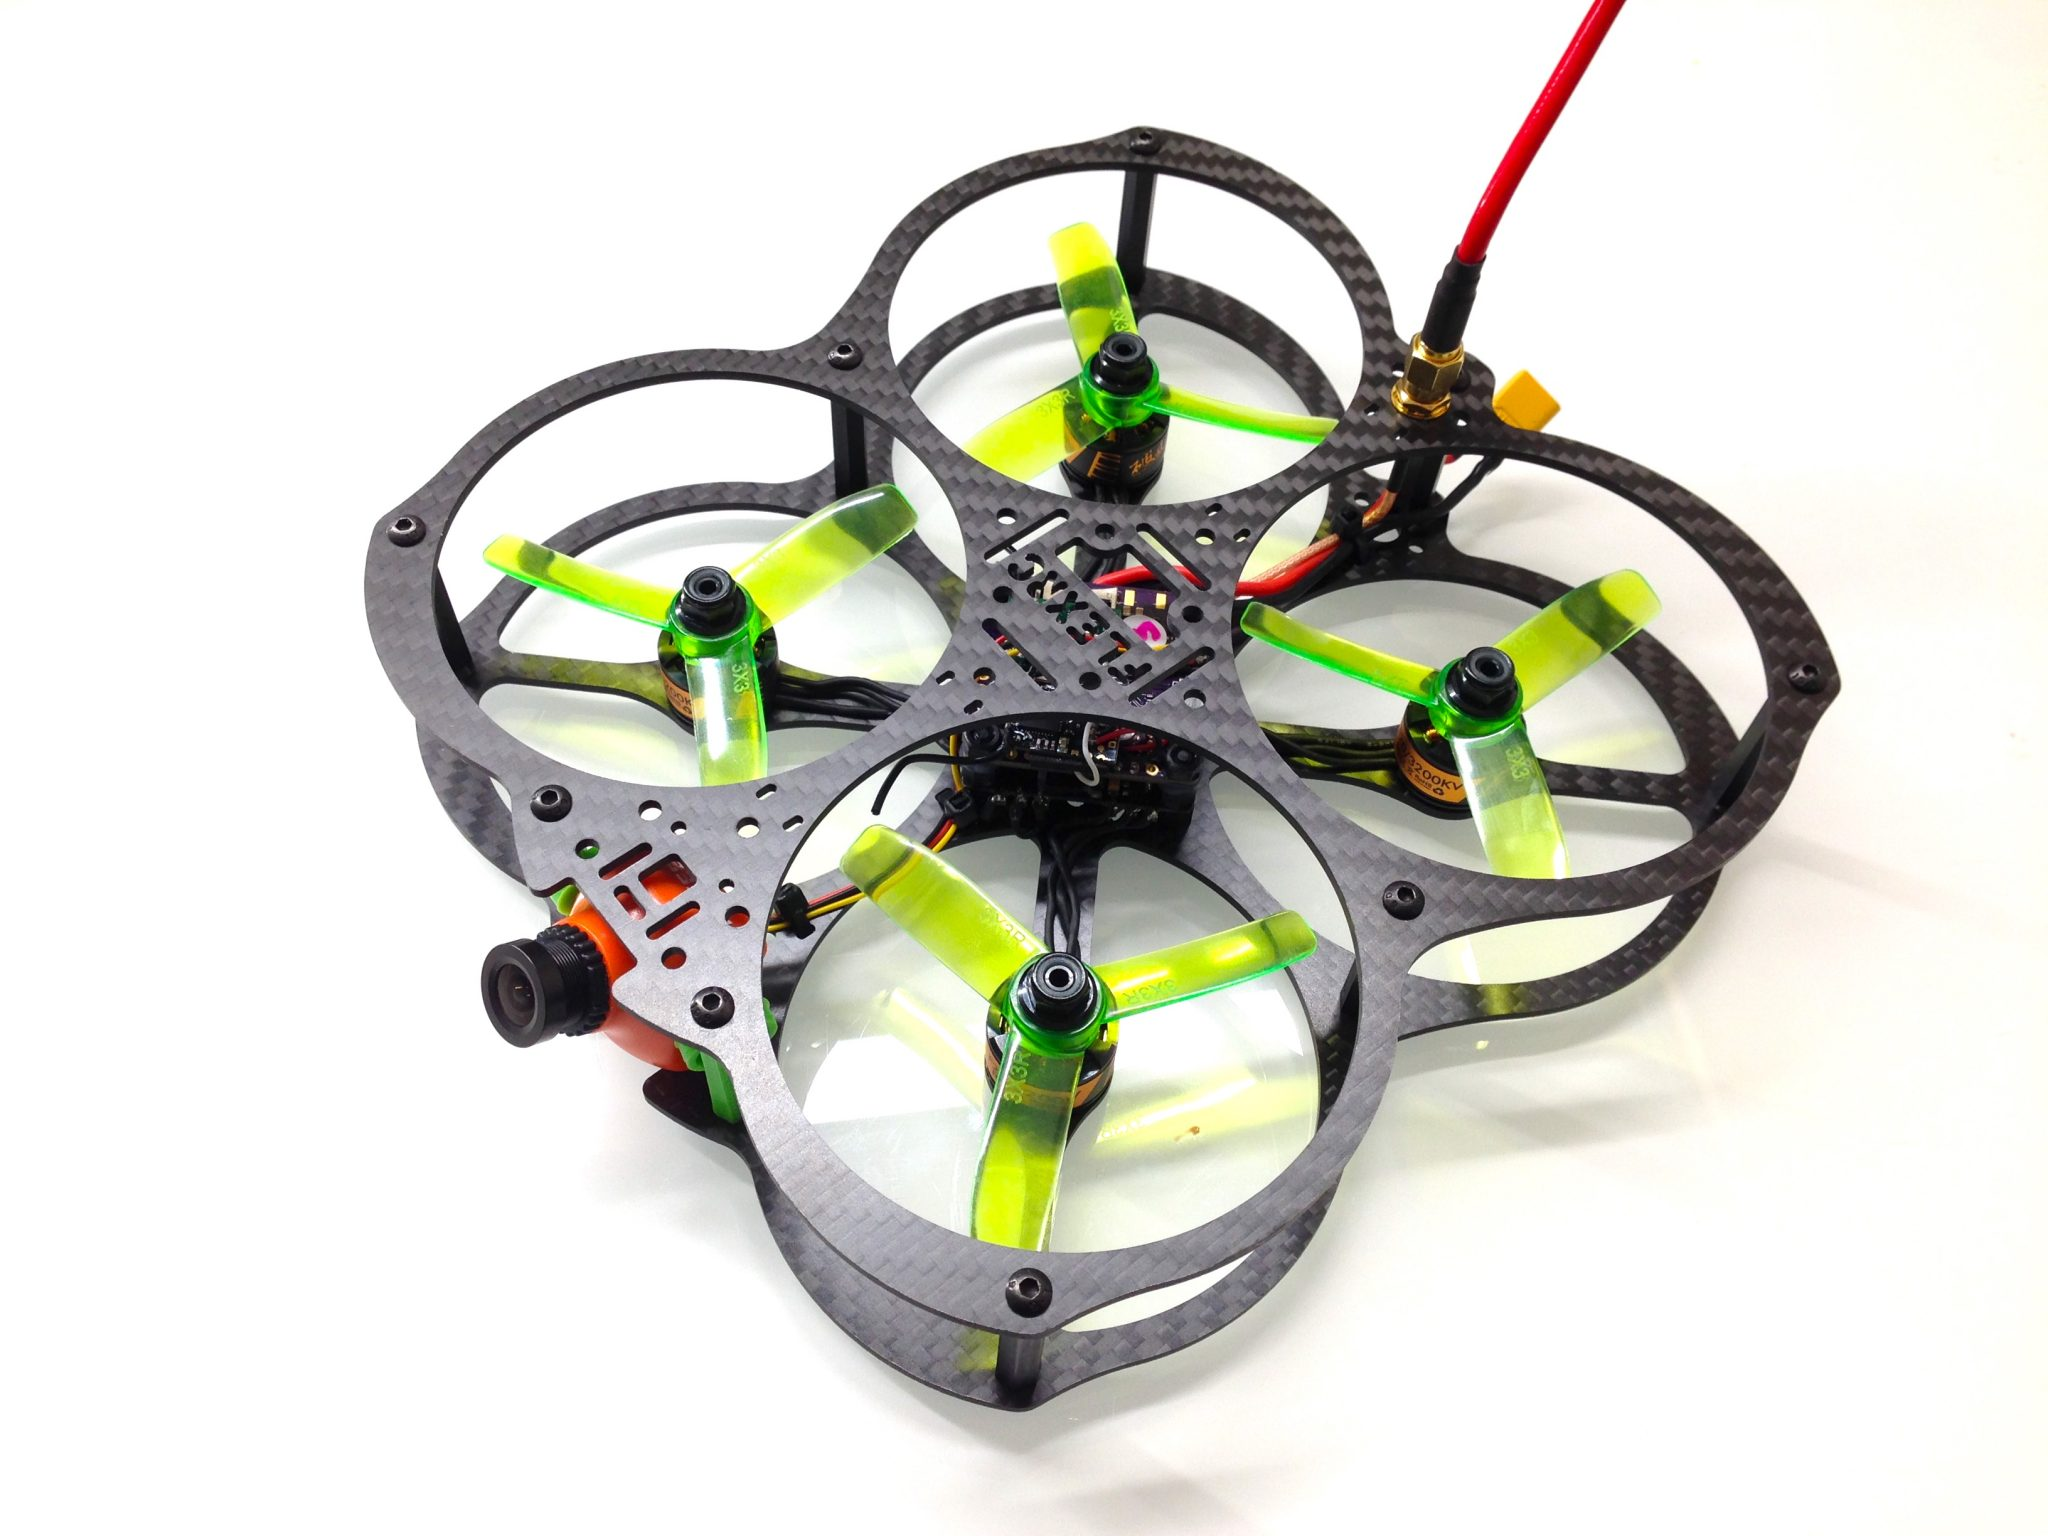 Owl - FPV Proximity Quadcopter - DIY Kit